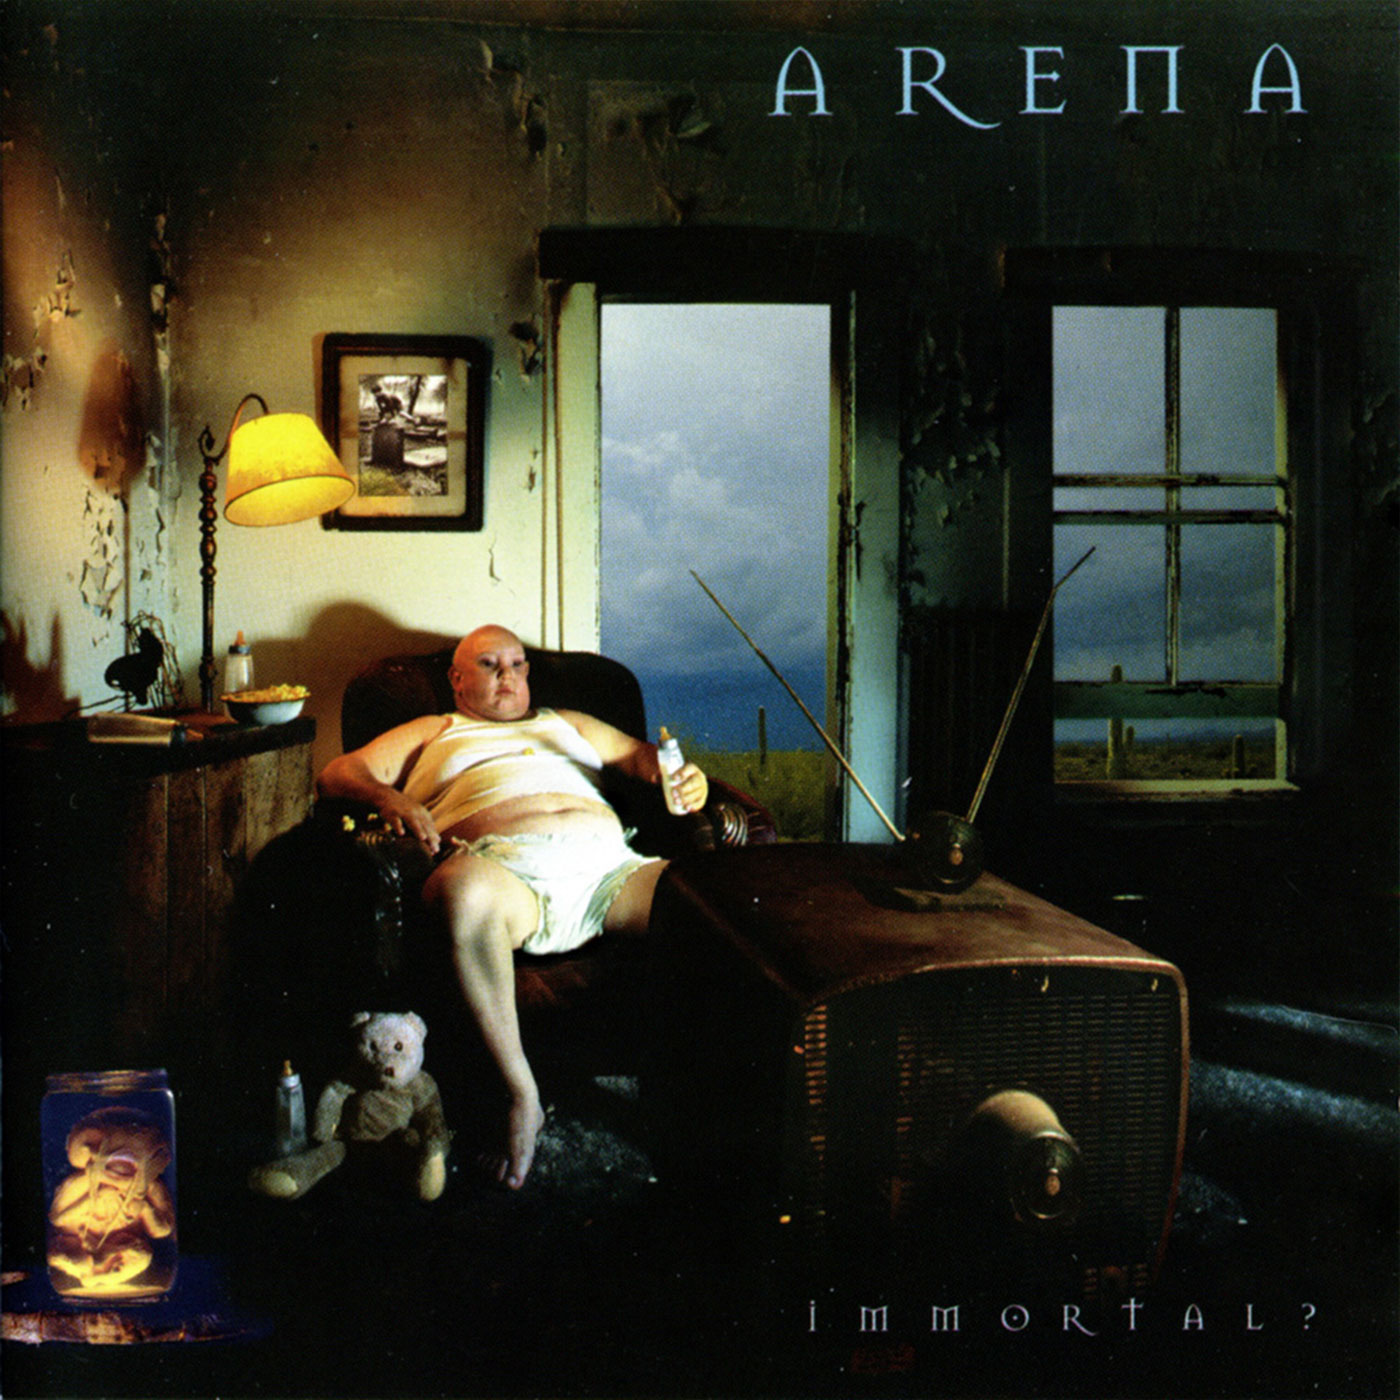 Immortal Arena